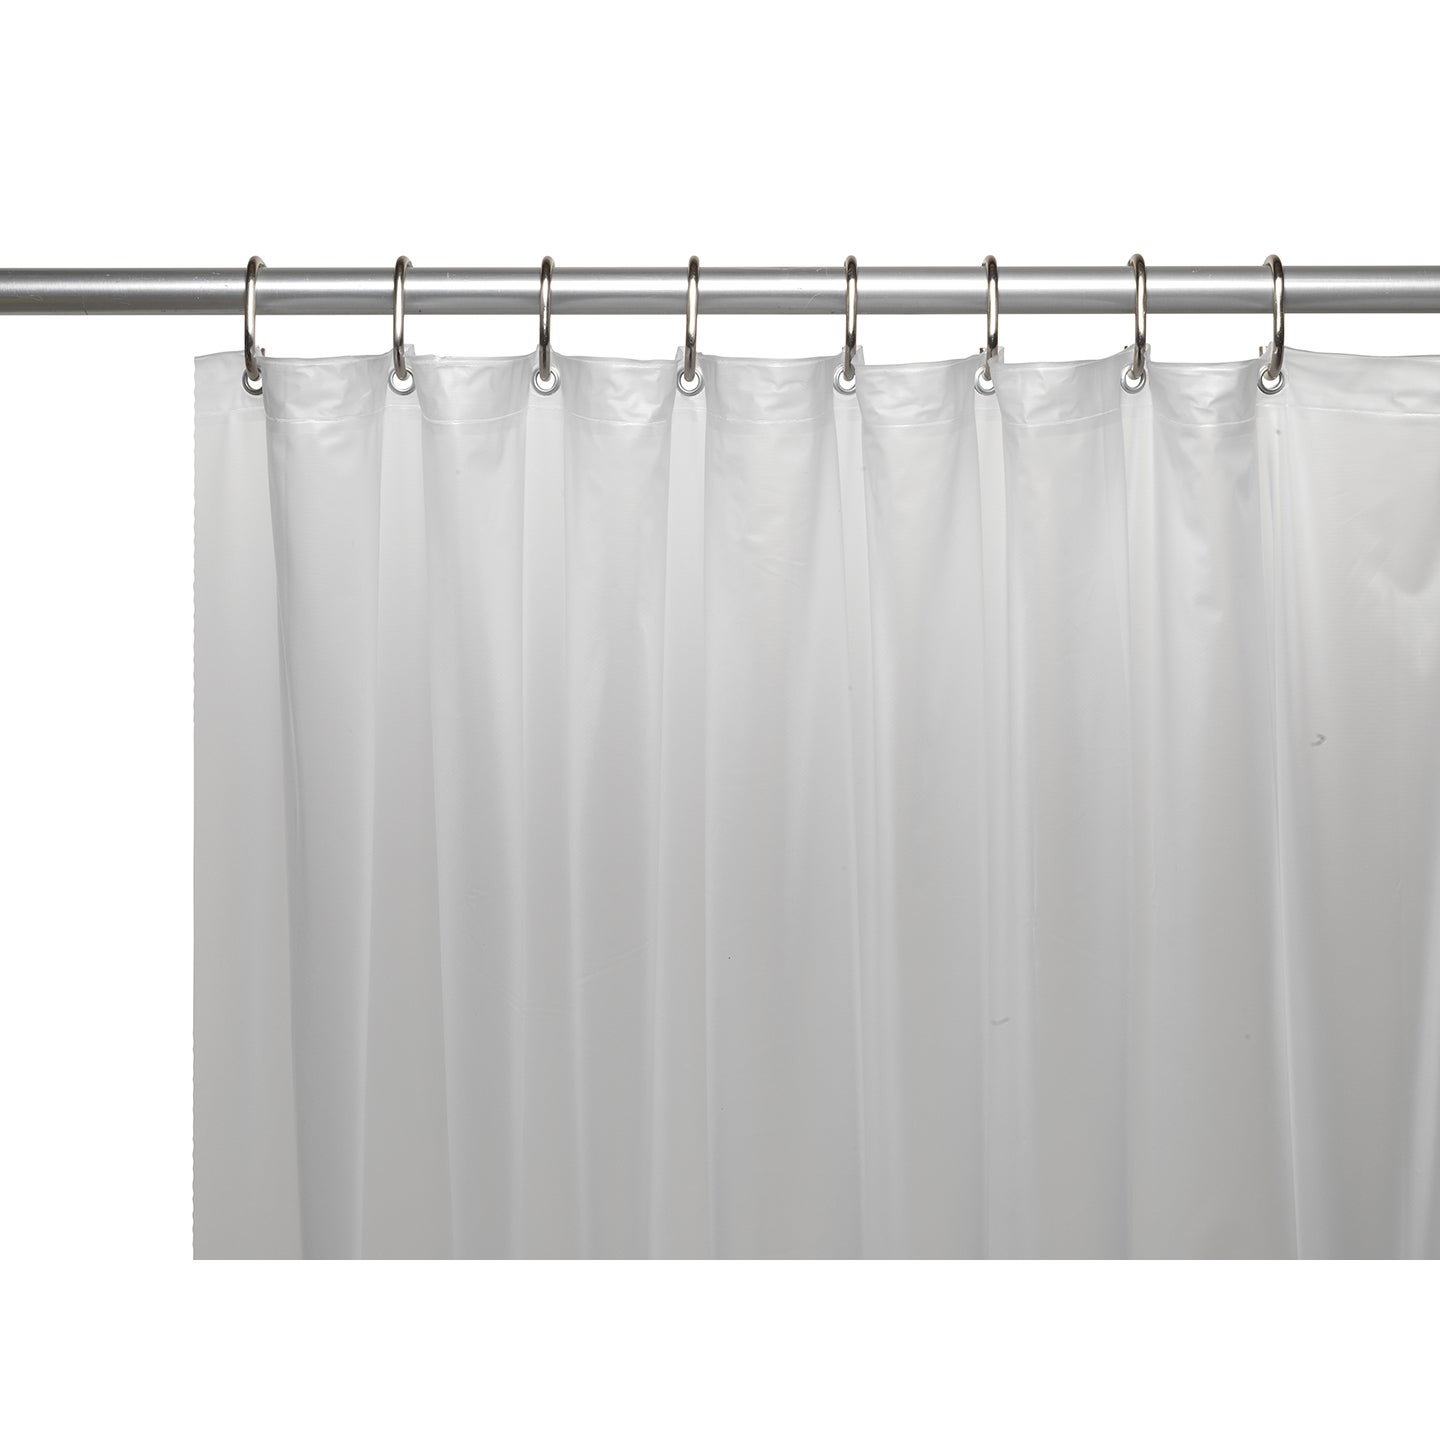 14 Piece Christmas Poinsettia Holiday Themed Shower Curtain Set   Free  Shipping On Orders Over $45   Overstock.com   17868281